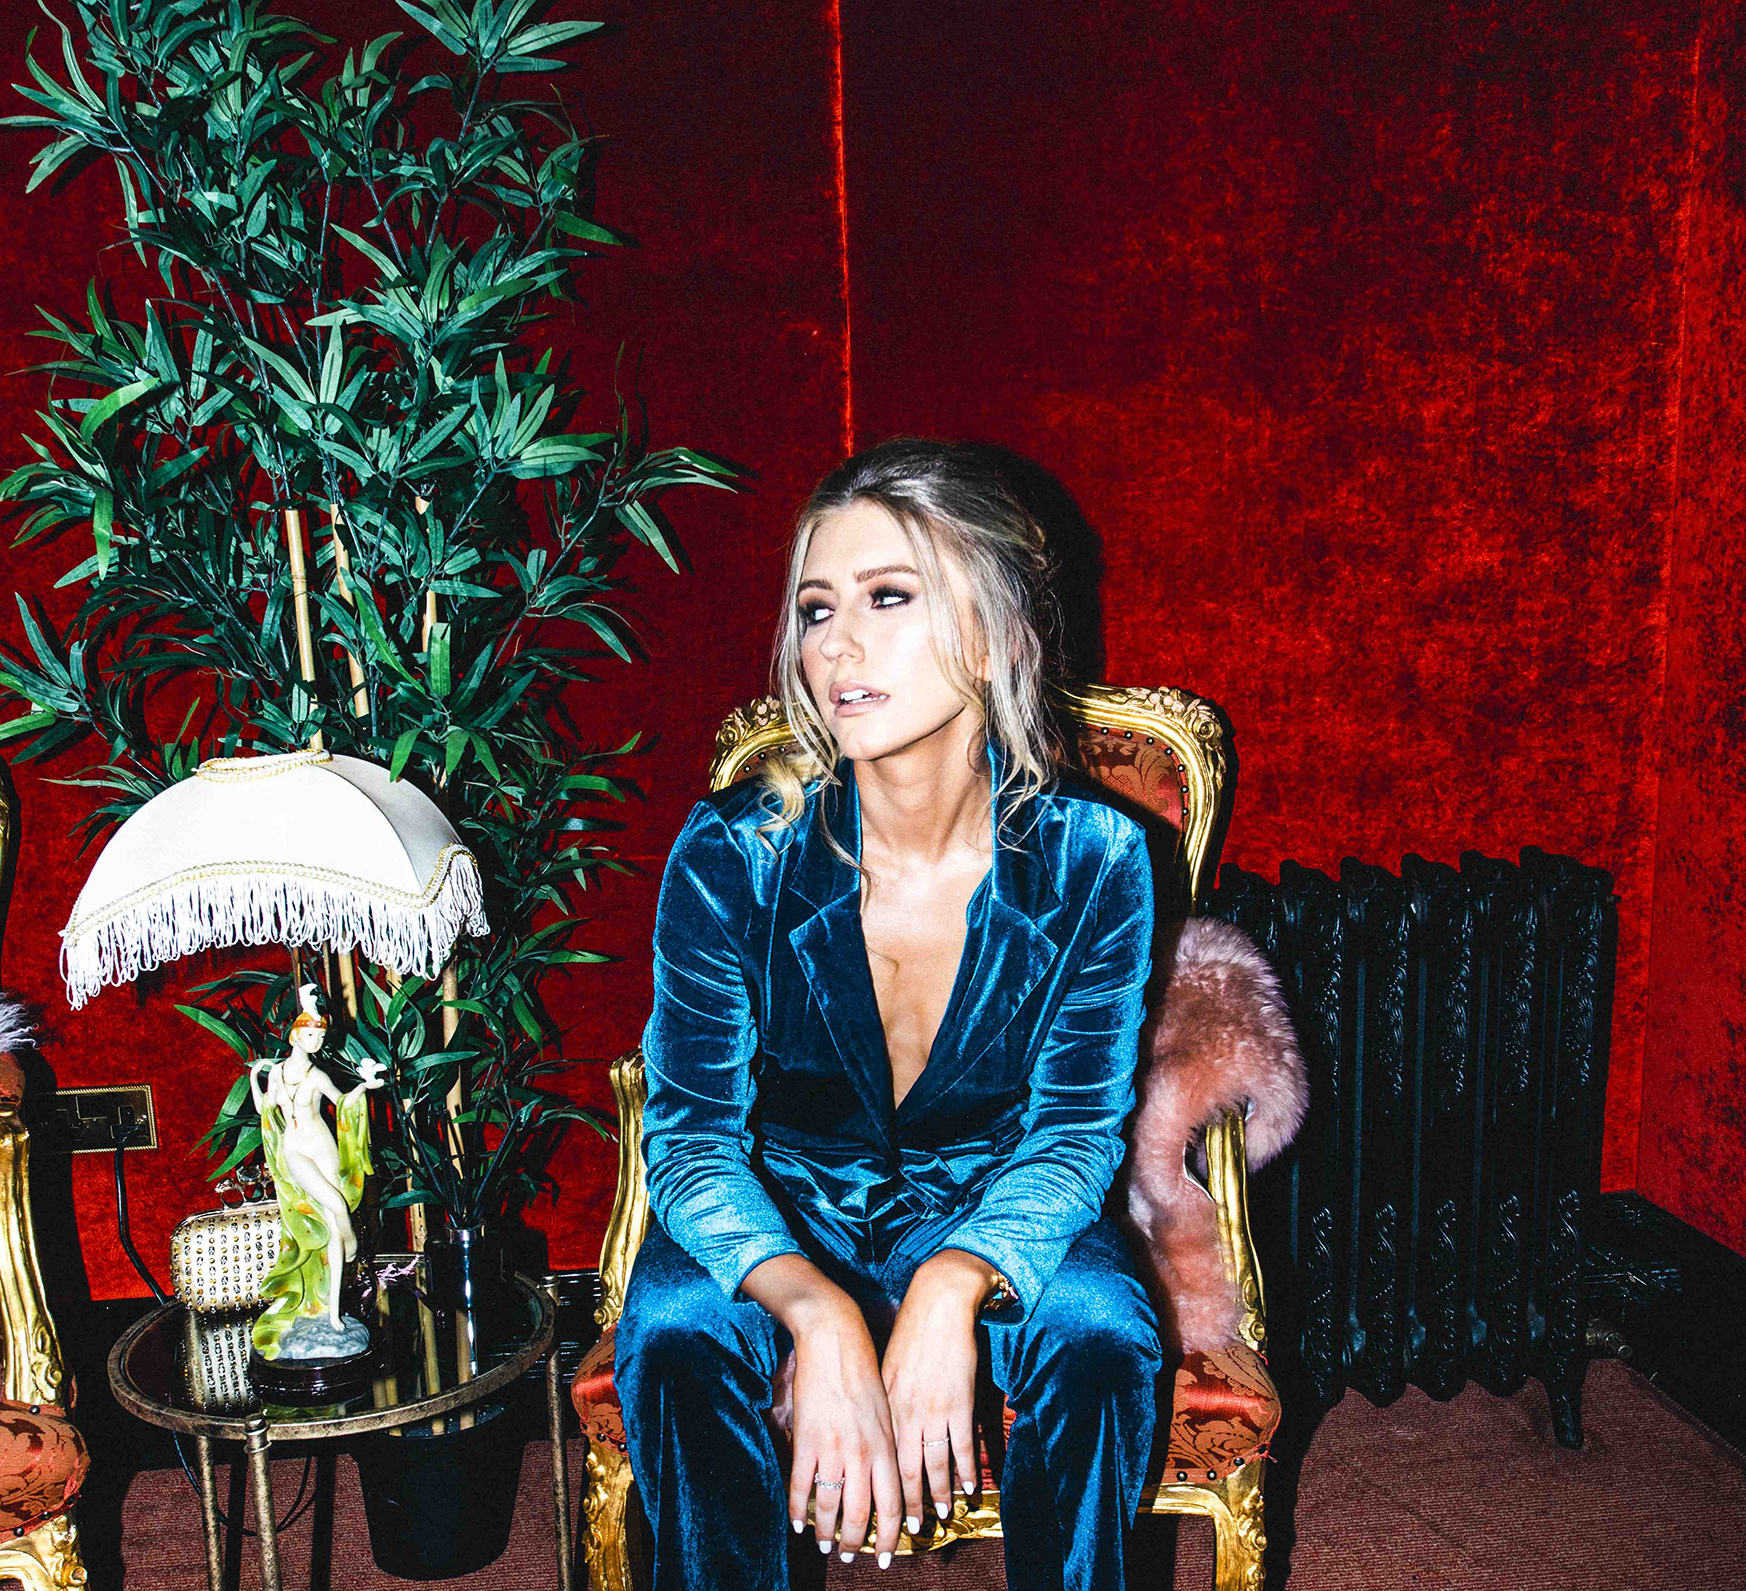 Irish electro-pop artist Fí releases her new single 'Over You' - Listen Now!